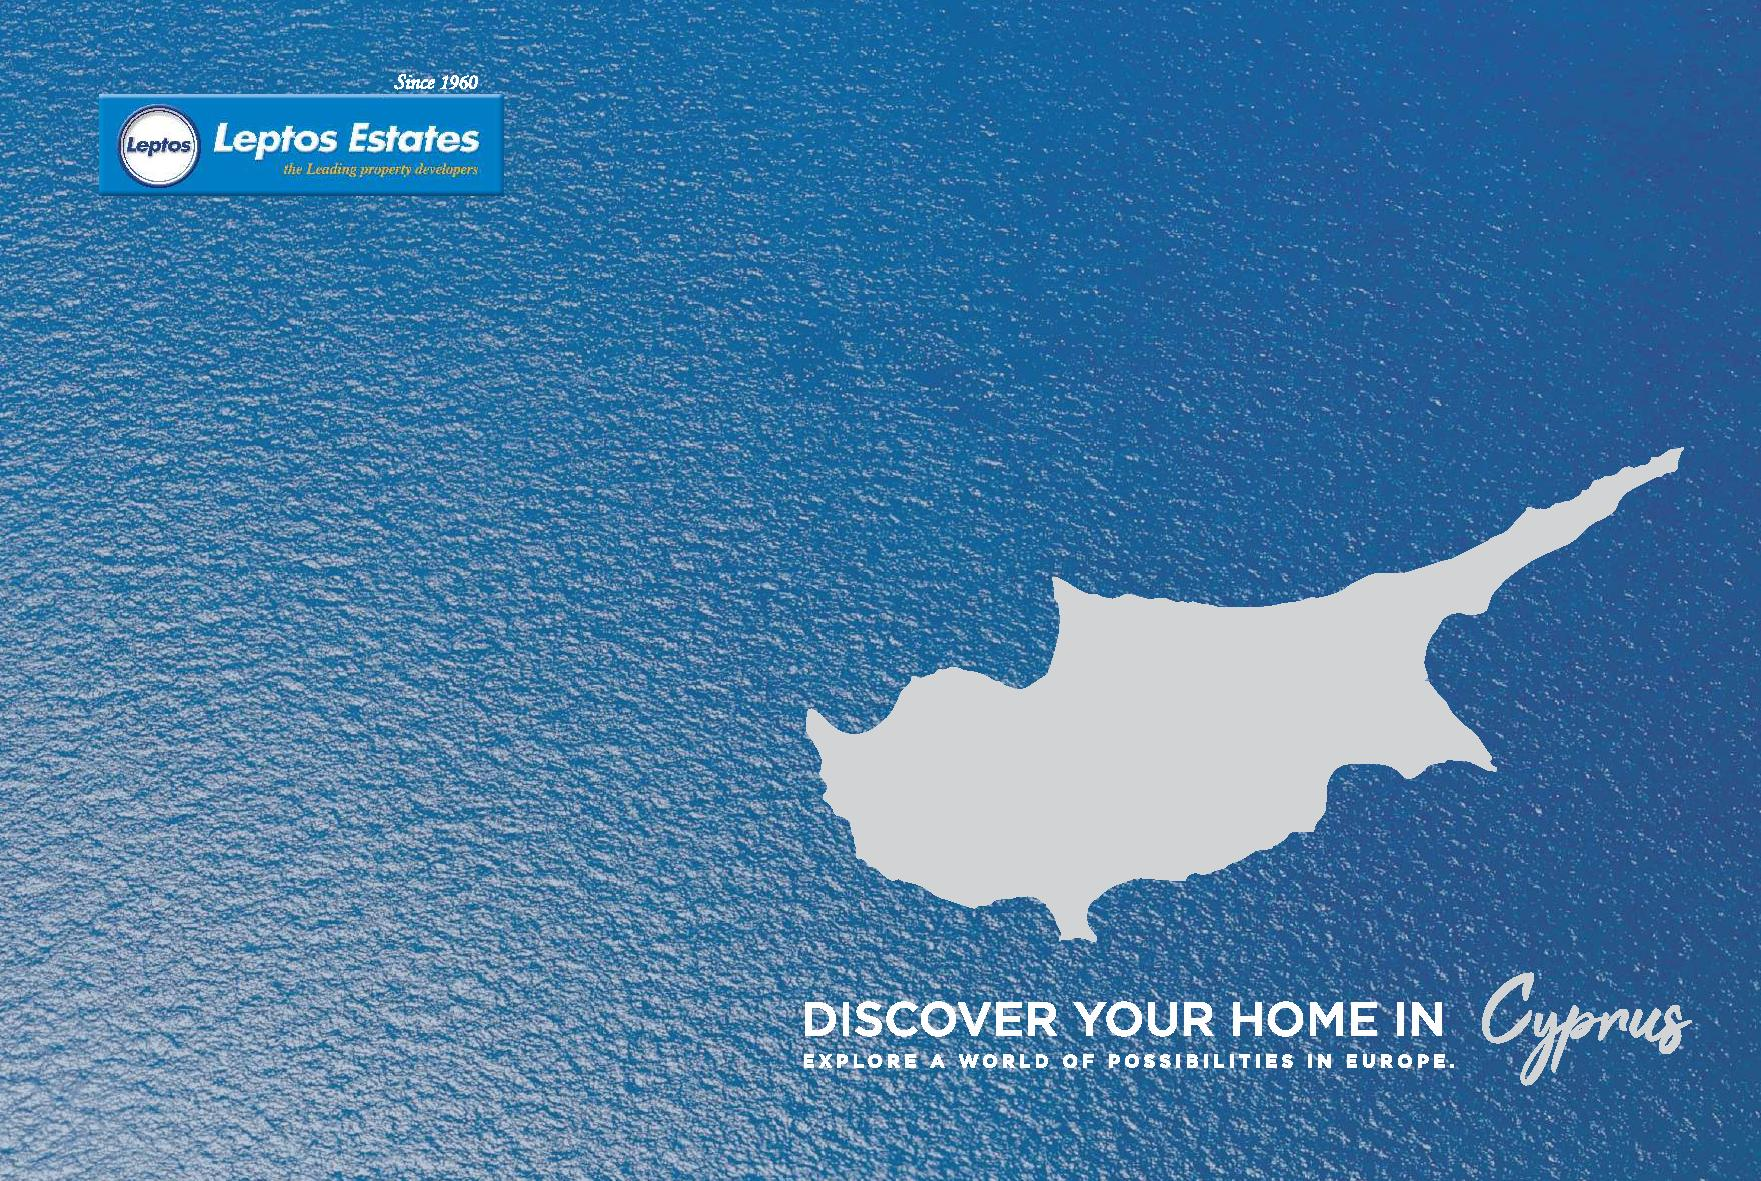 Leptos Estates Cyprus Corporate brochure